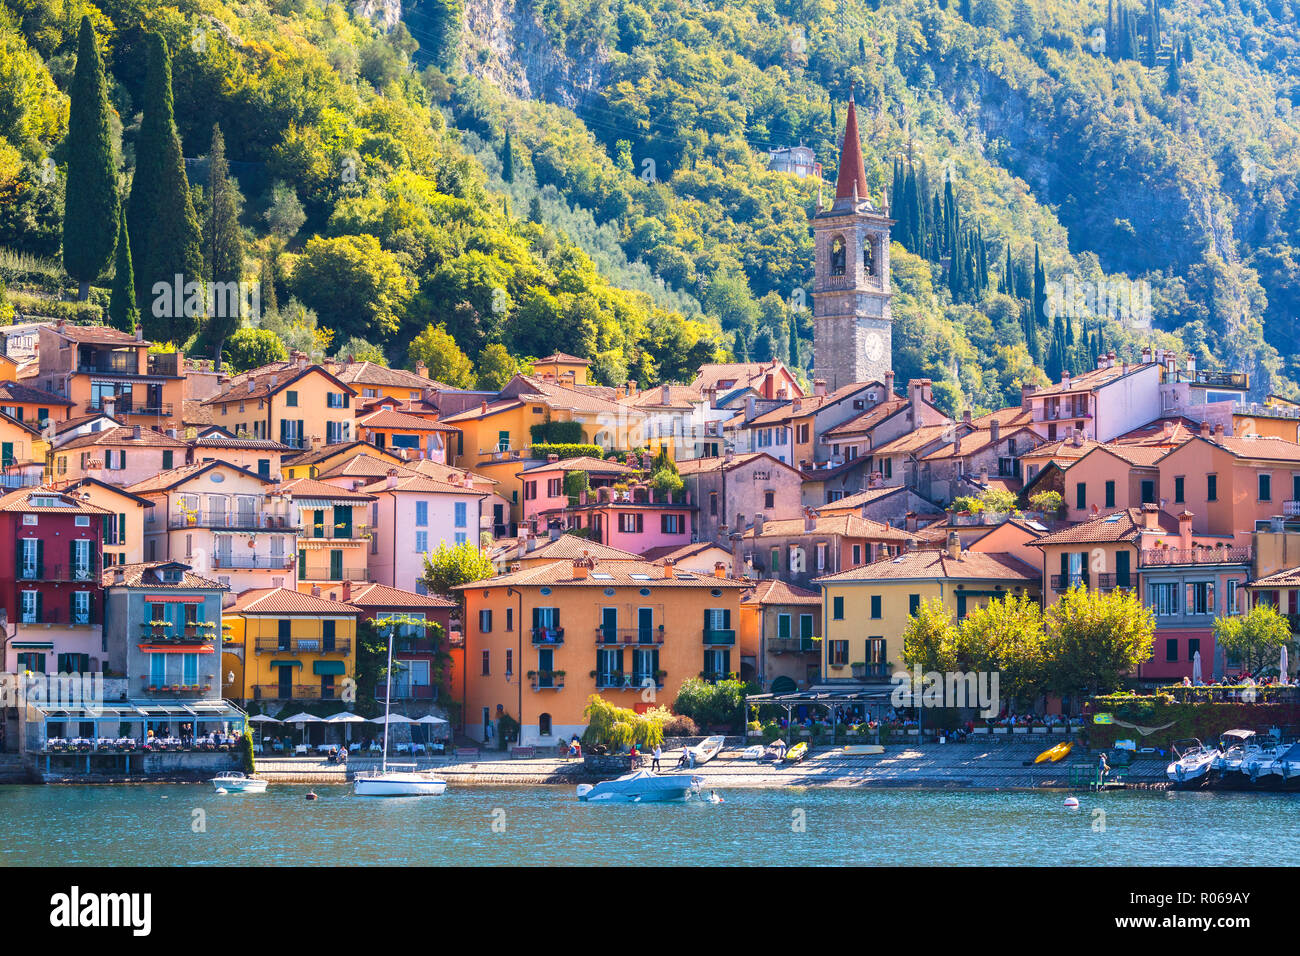 The iconic village of Varenna on the shore of Lake Como, Lecco province, Lombardy, Italian Lakes, Italy, Europe - Stock Image